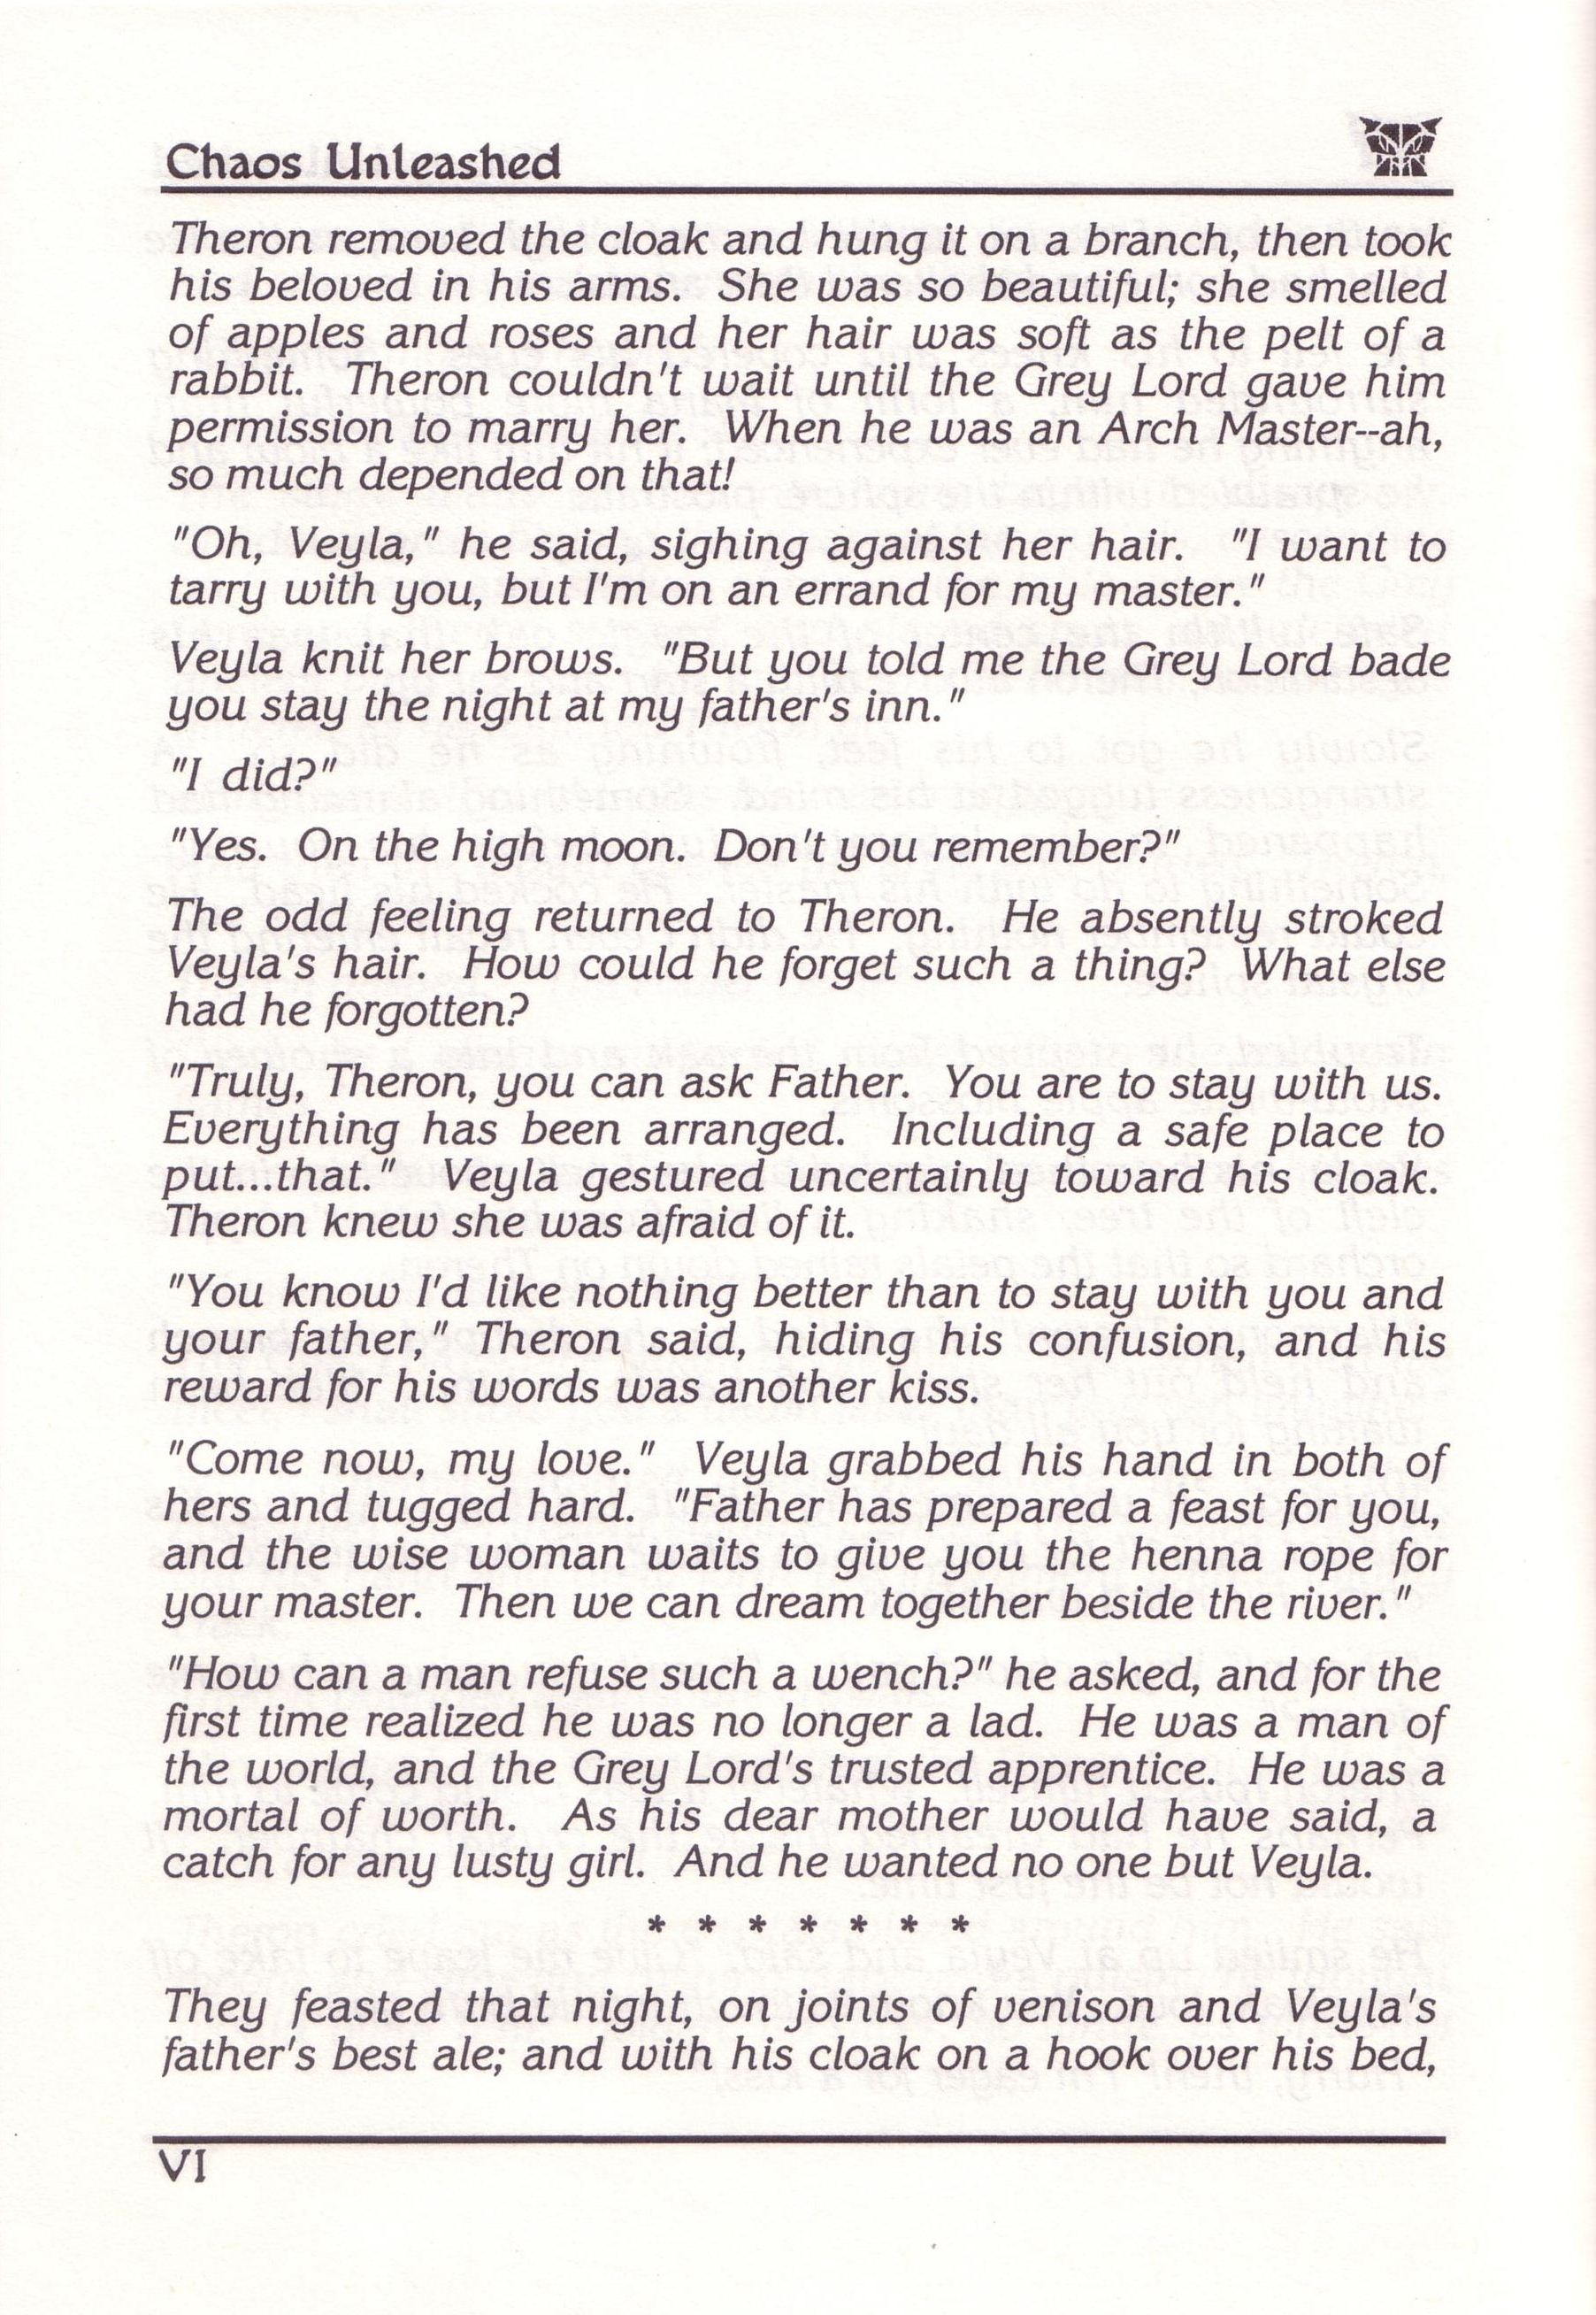 Dungeon Master for PC with FTL Sound Adapter (US Release) - Manual Page 12